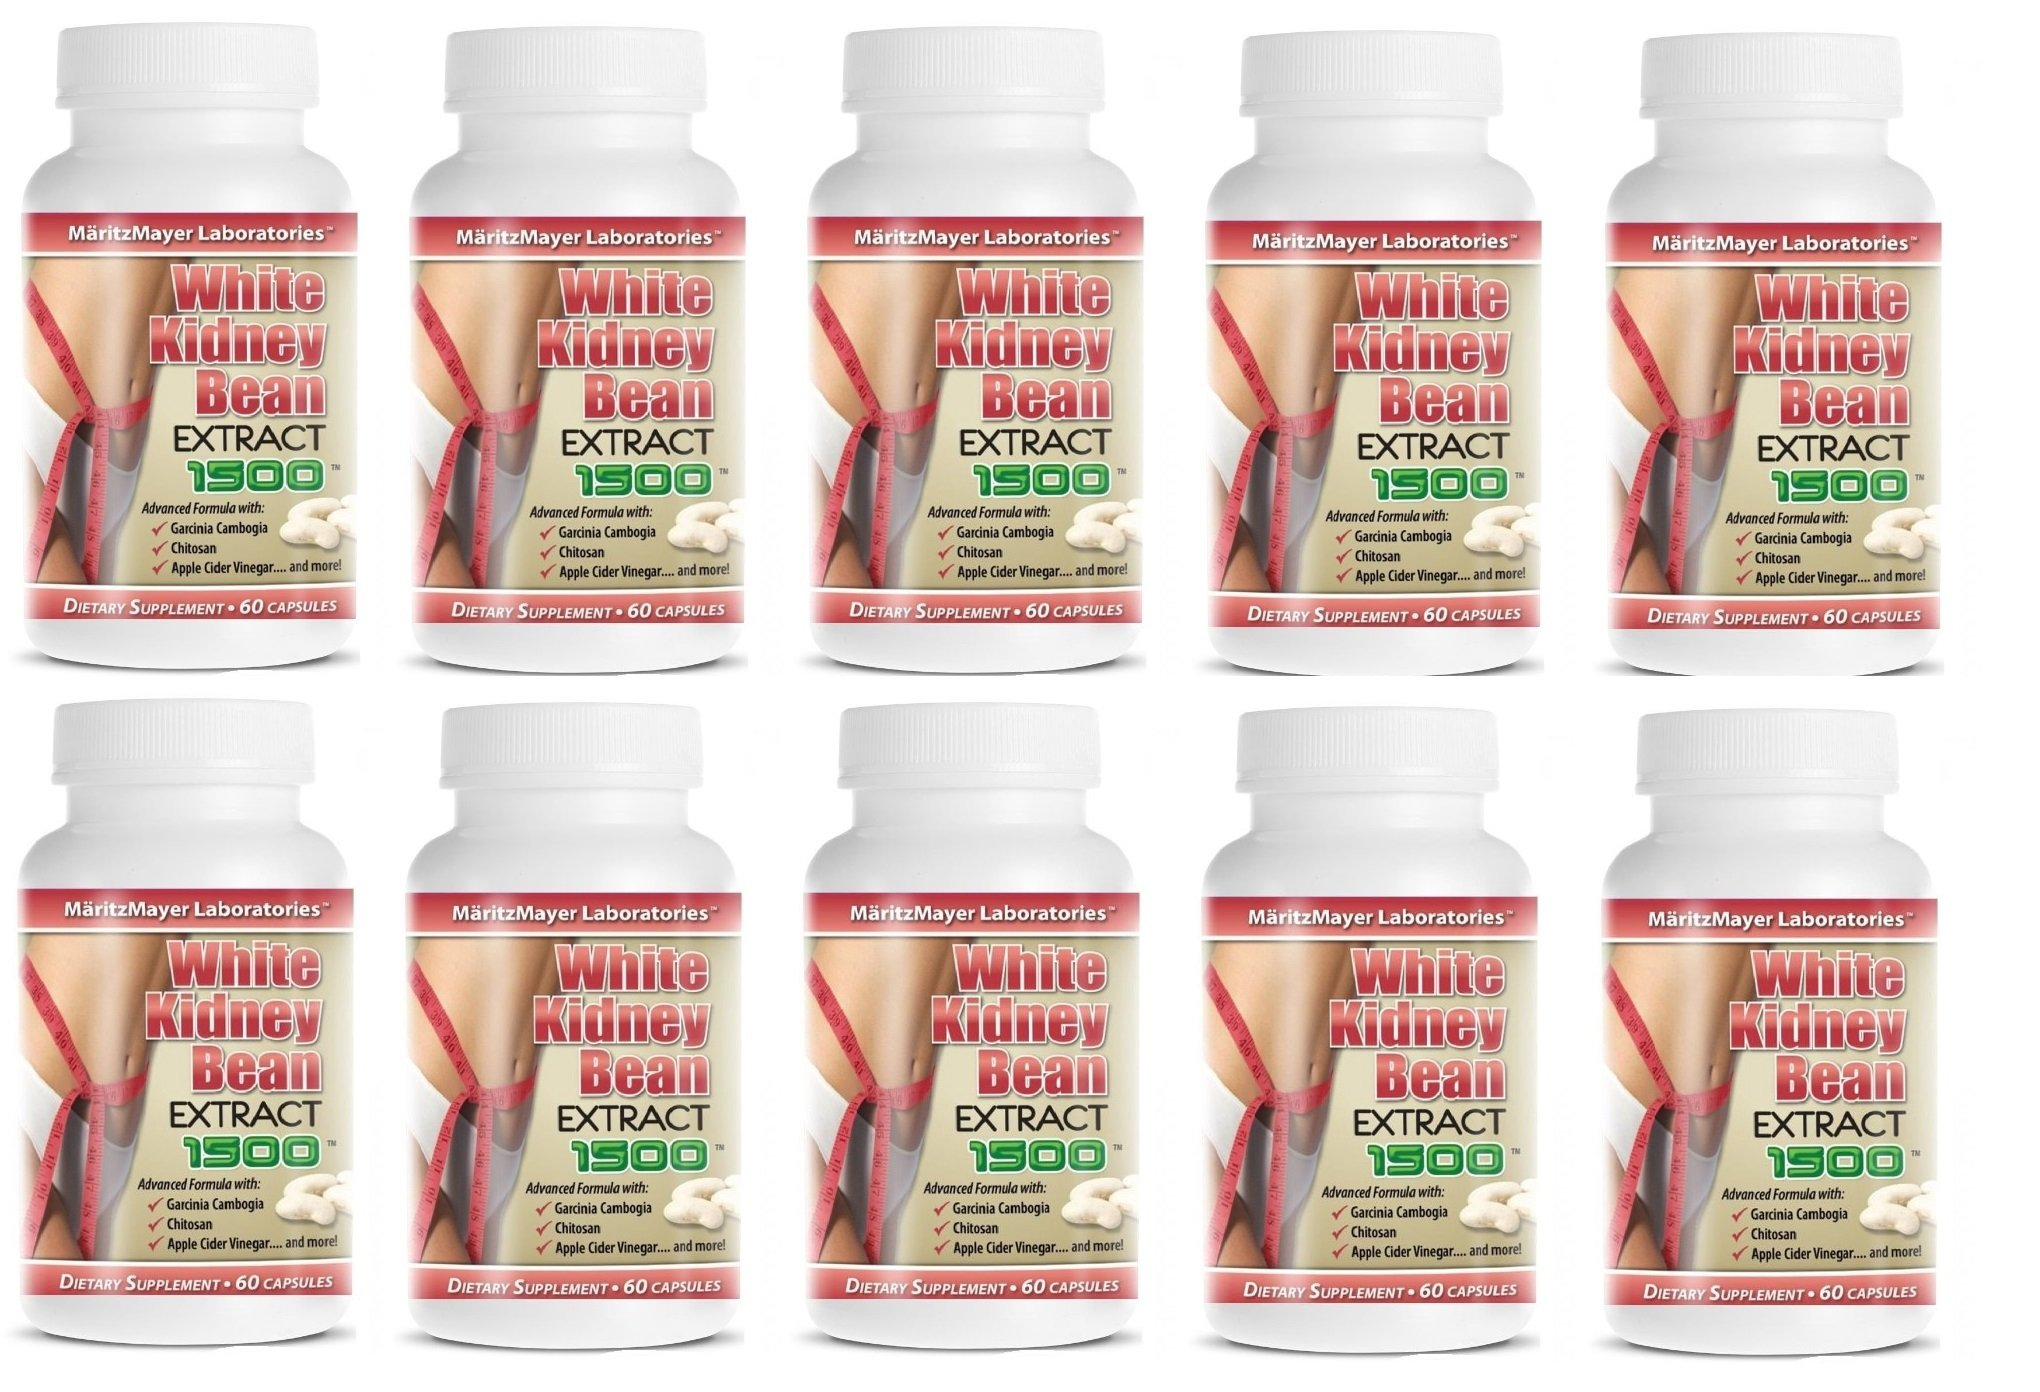 White Kidney Bean Extract w/ Garcinia Cambogia Weight Loss Fat Burner 1500mg 10 Bottles